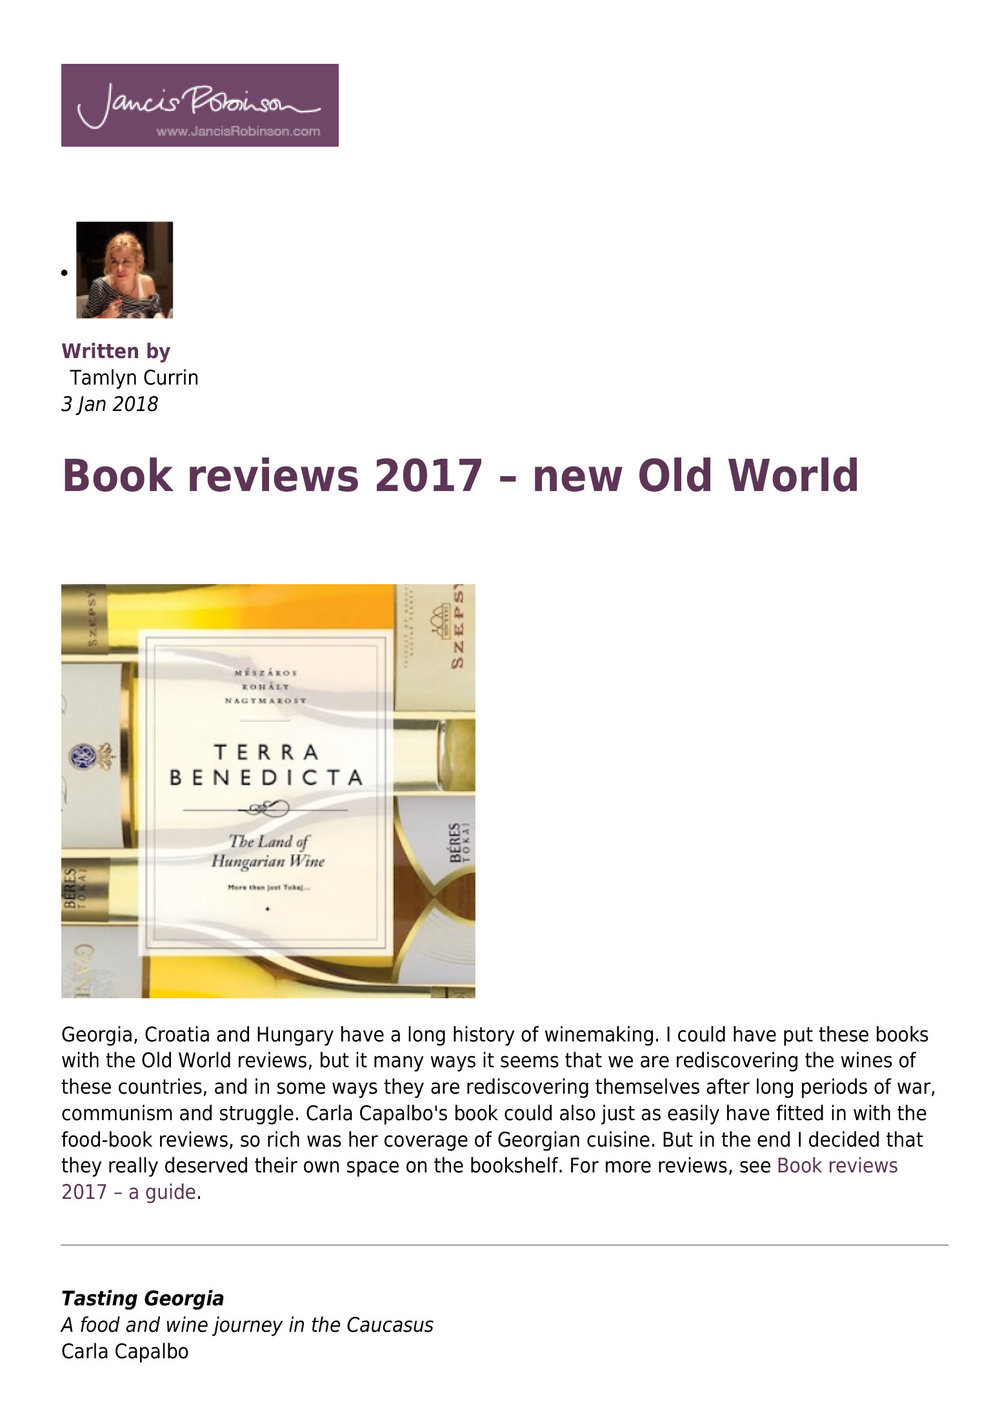 2018-book-reviews-2017-new-old-world-tasting-georgia.jpg